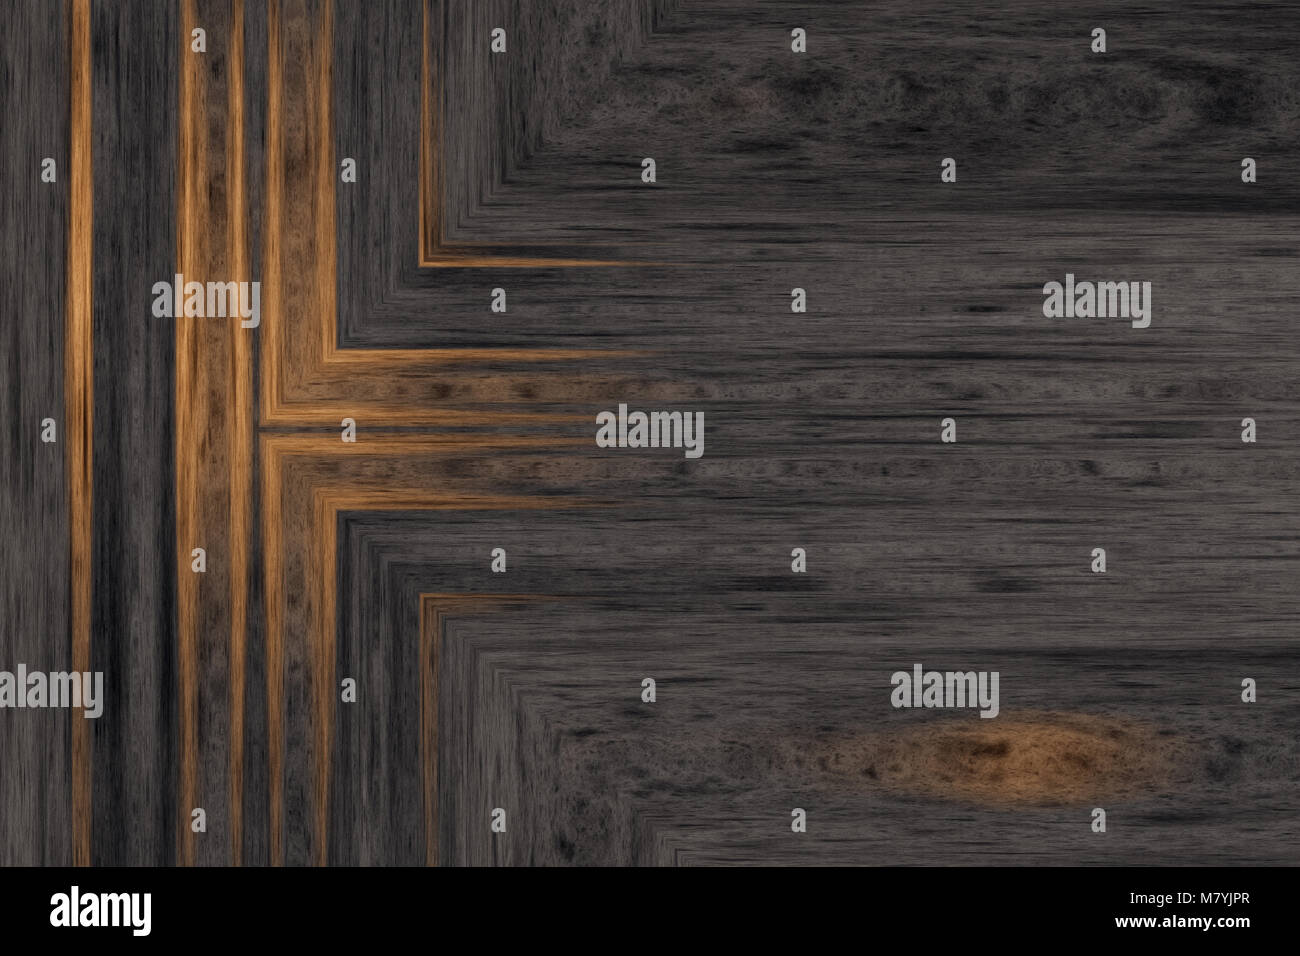 Dark wooden background with yellow painted detail. Abstract texture. 2d illustration - Stock Image